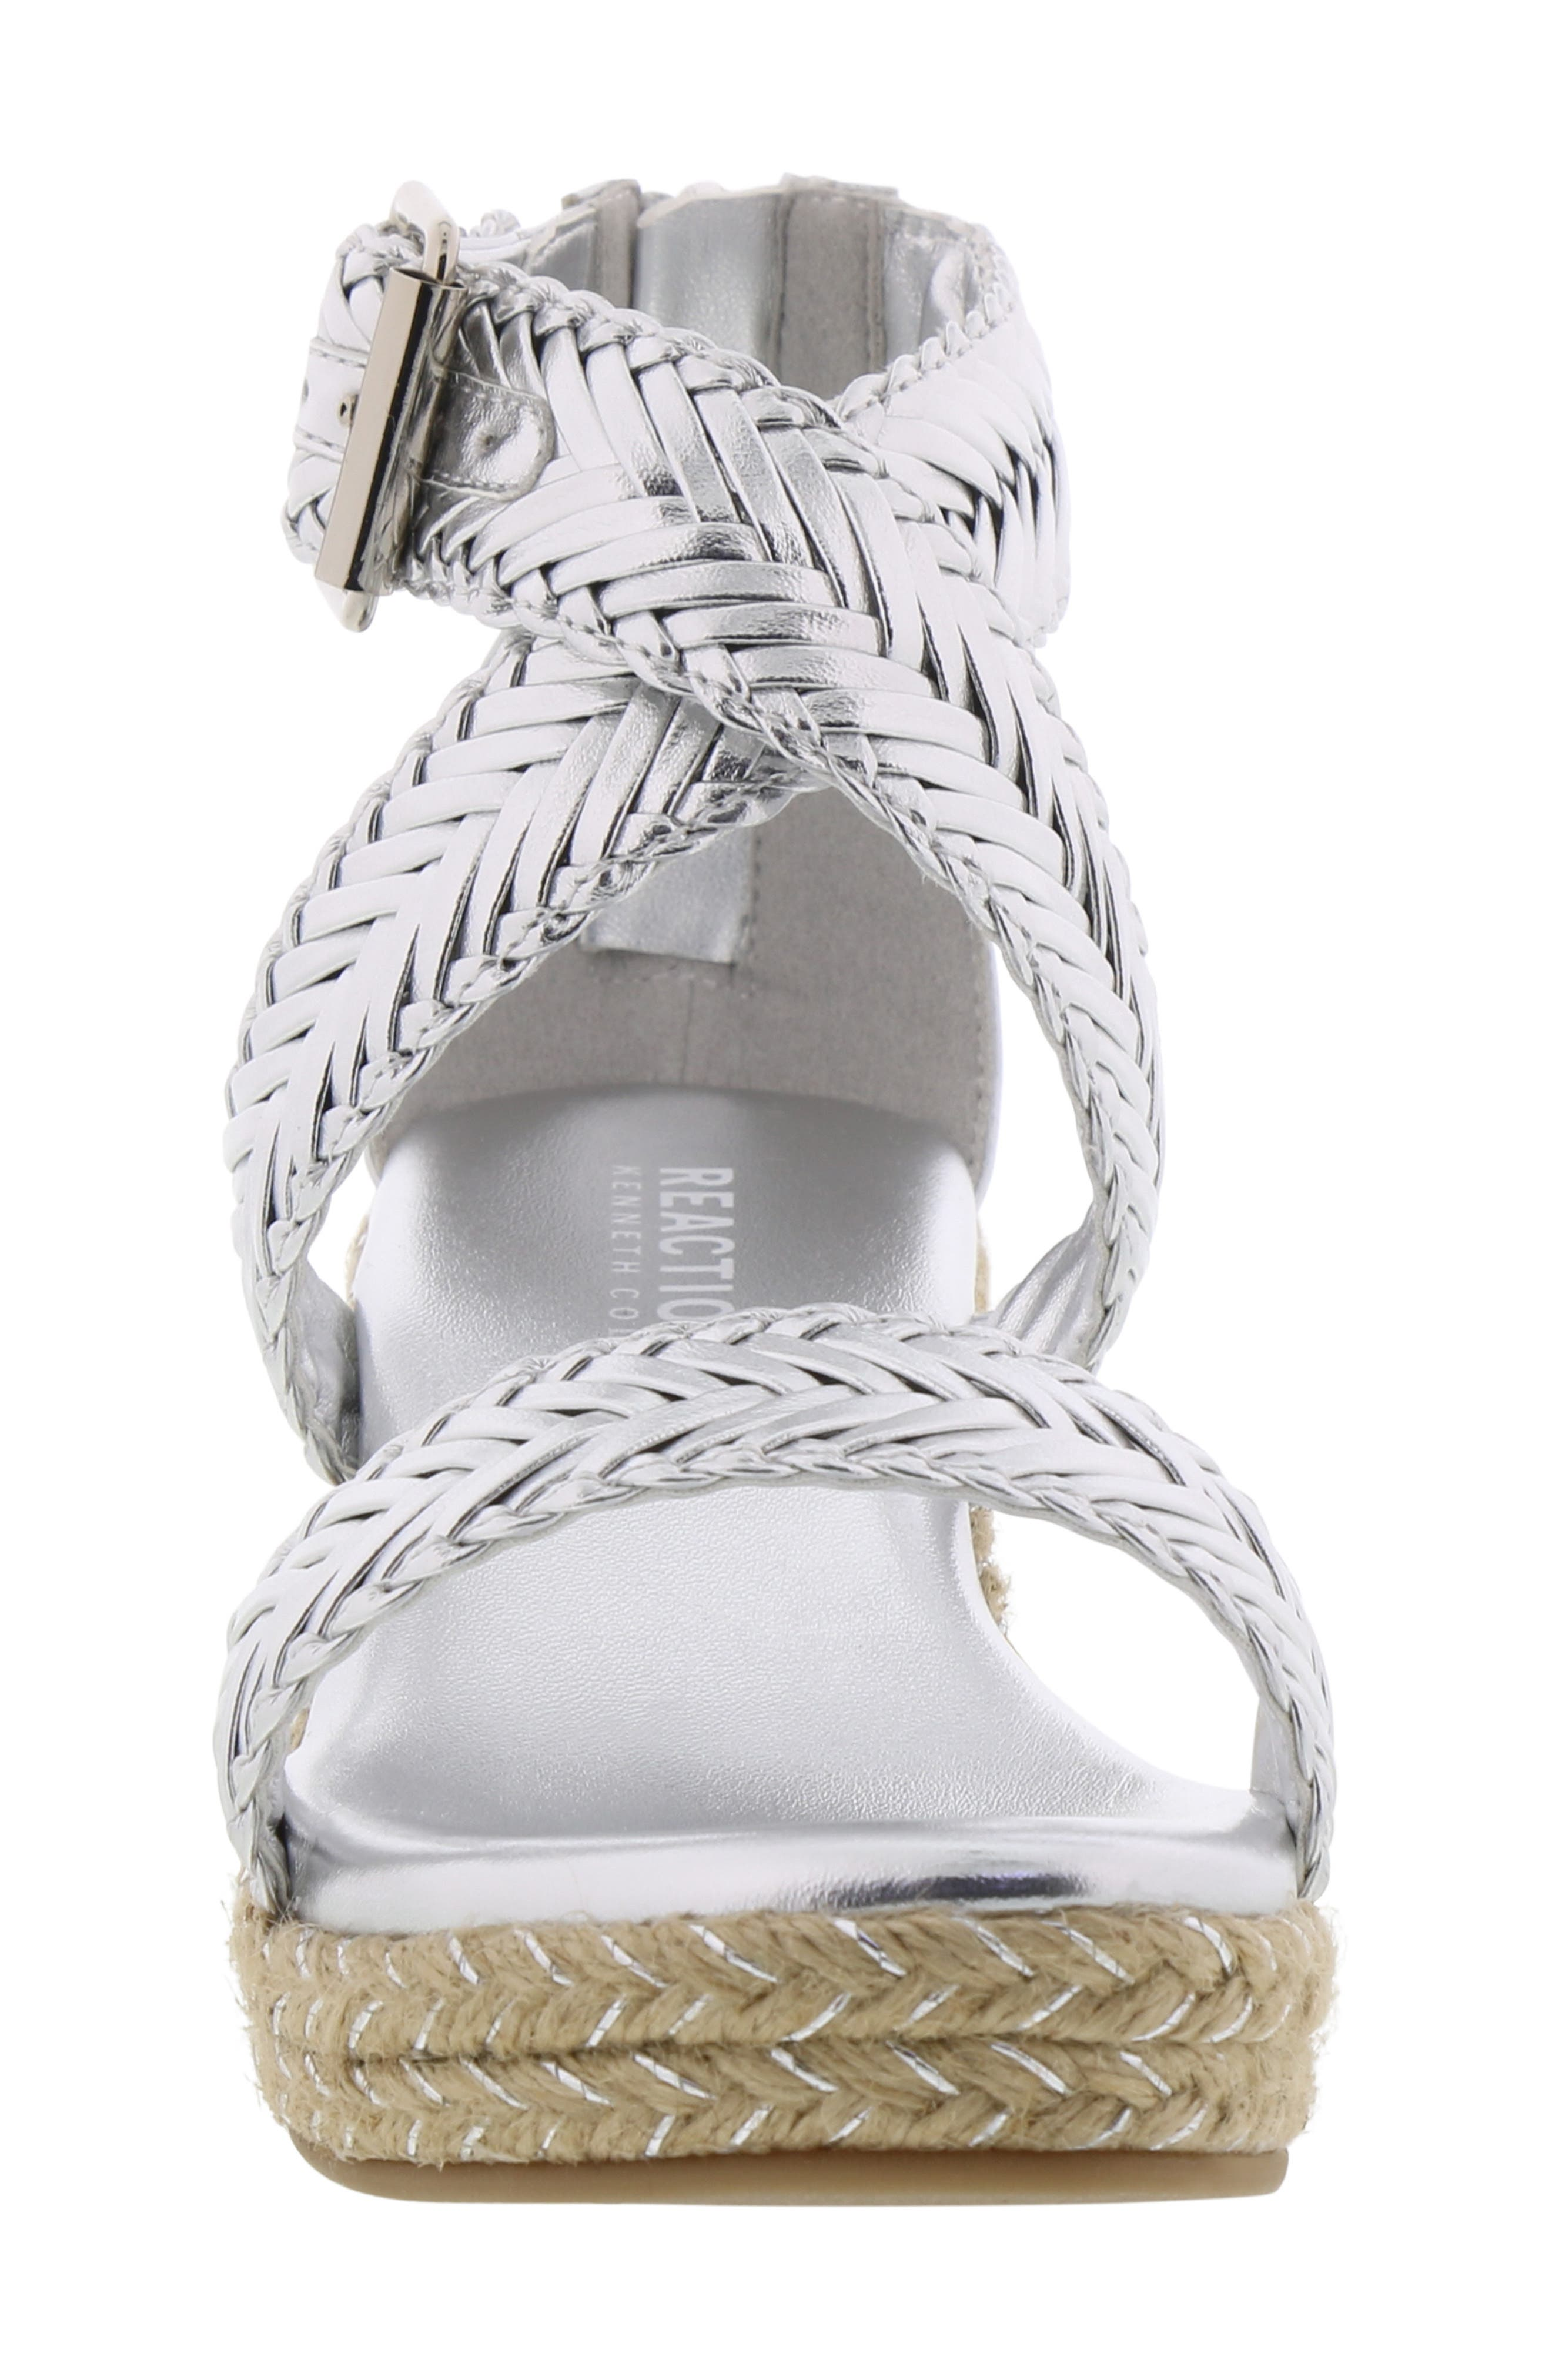 REACTION KENNETH COLE, Reed Sway Metallic Wedge Sandal, Alternate thumbnail 4, color, SILVER